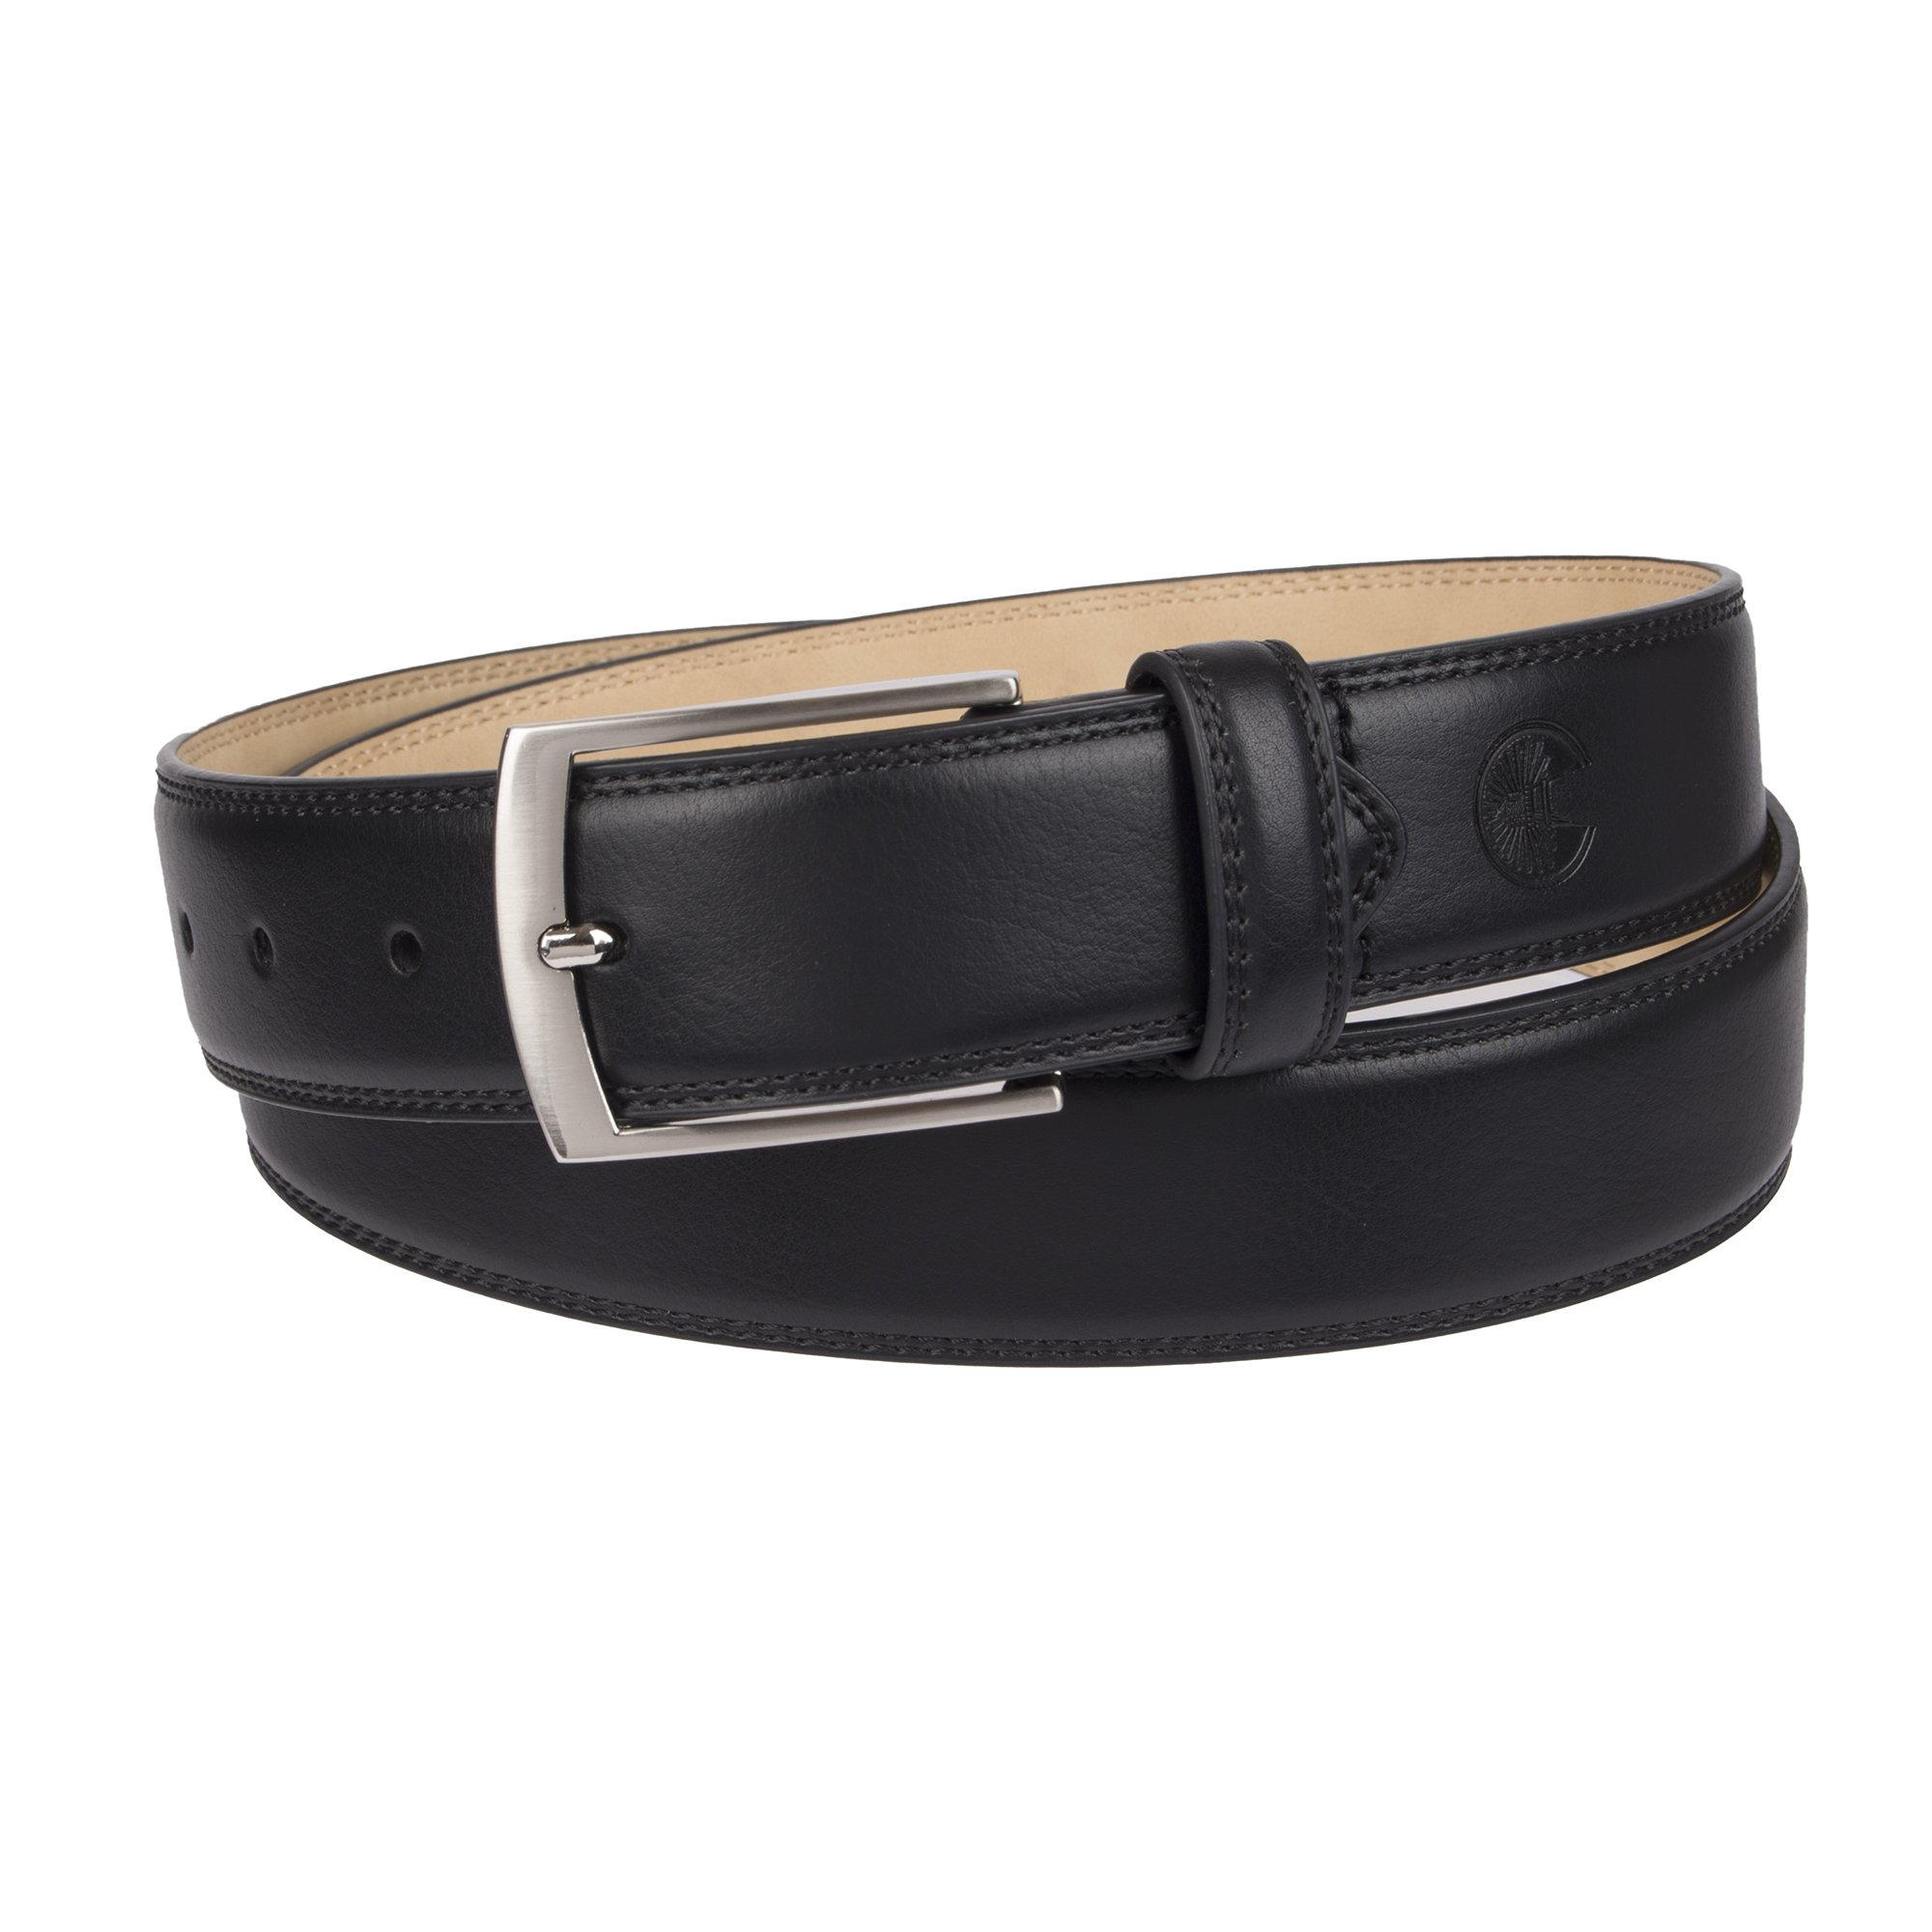 Weatherproof Men's Belt with Single Prong Buckle, Black/Silver Buckle, 36